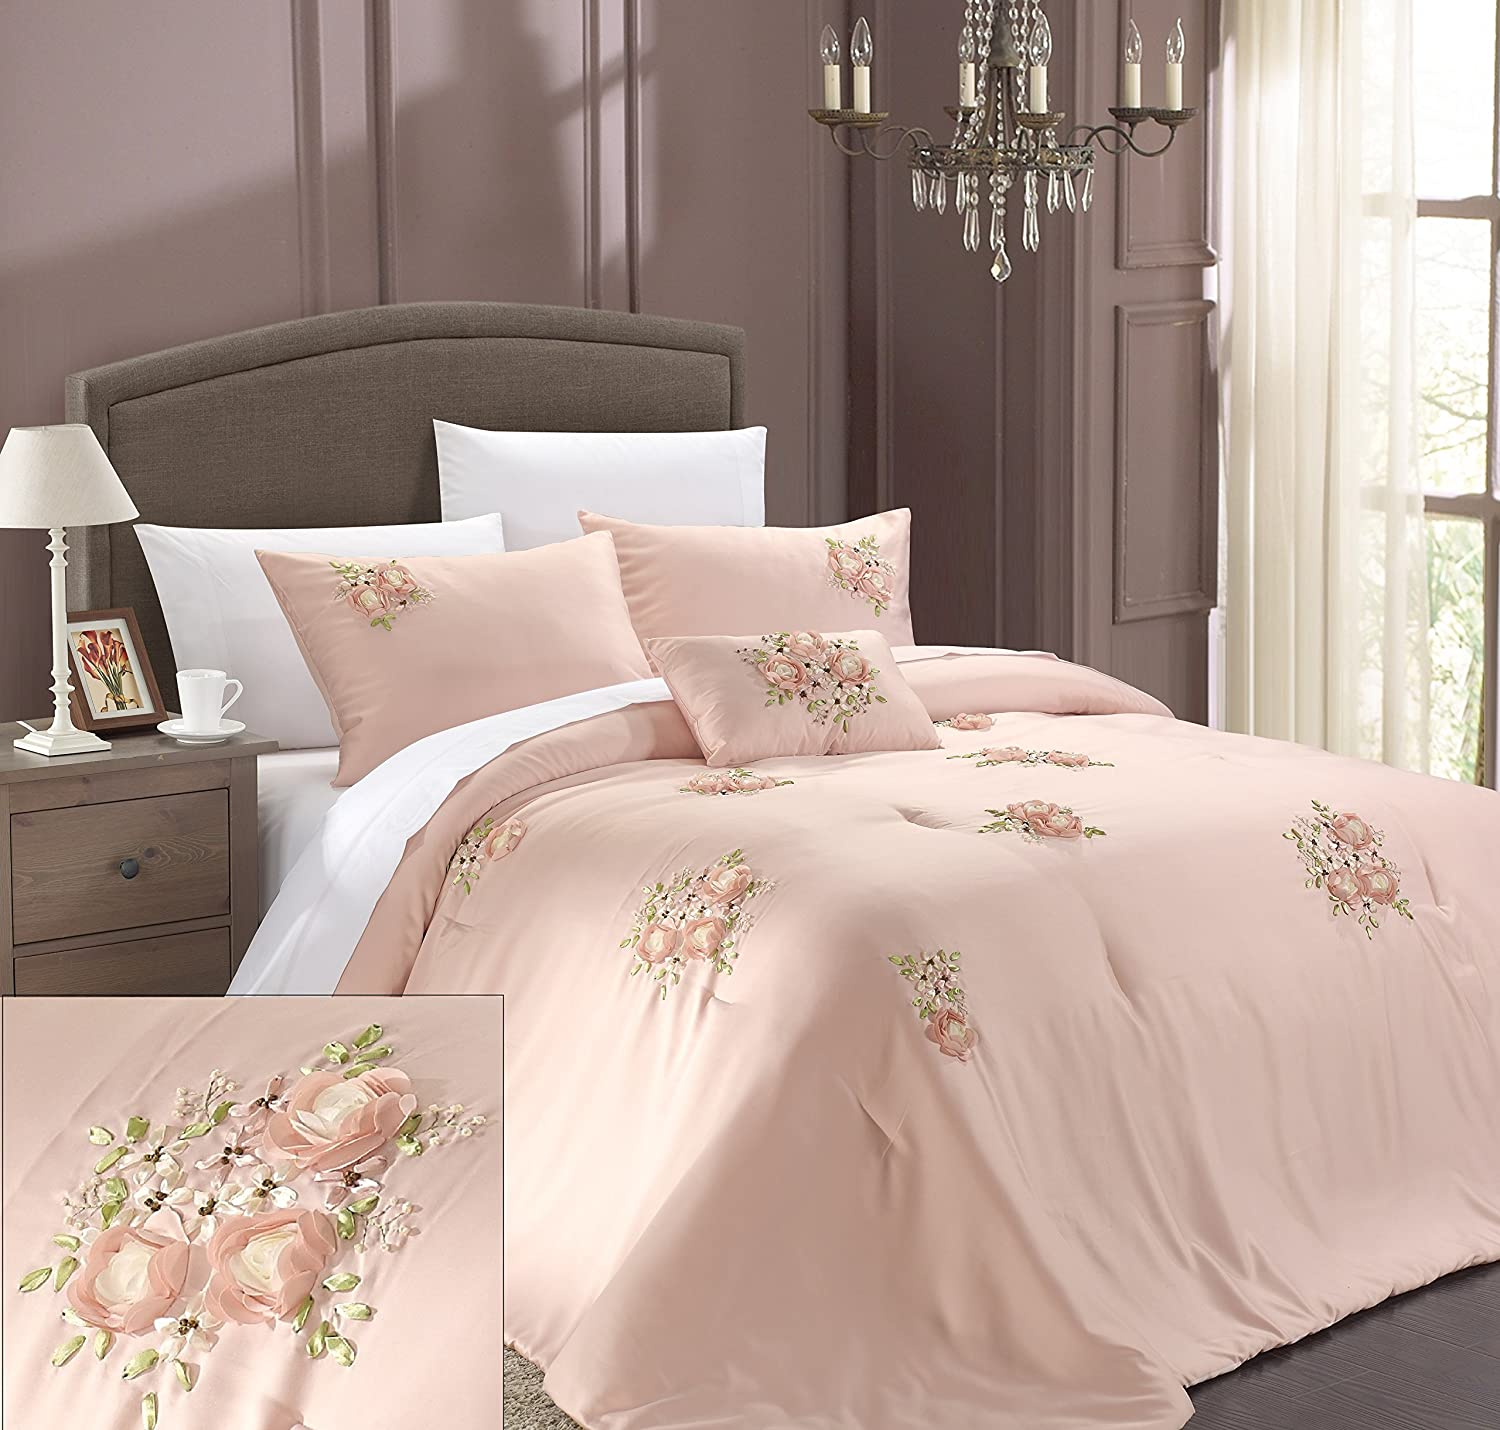 Amazoncom Chic Home Rosetta 5 Piece Comforter Set Queen Pink